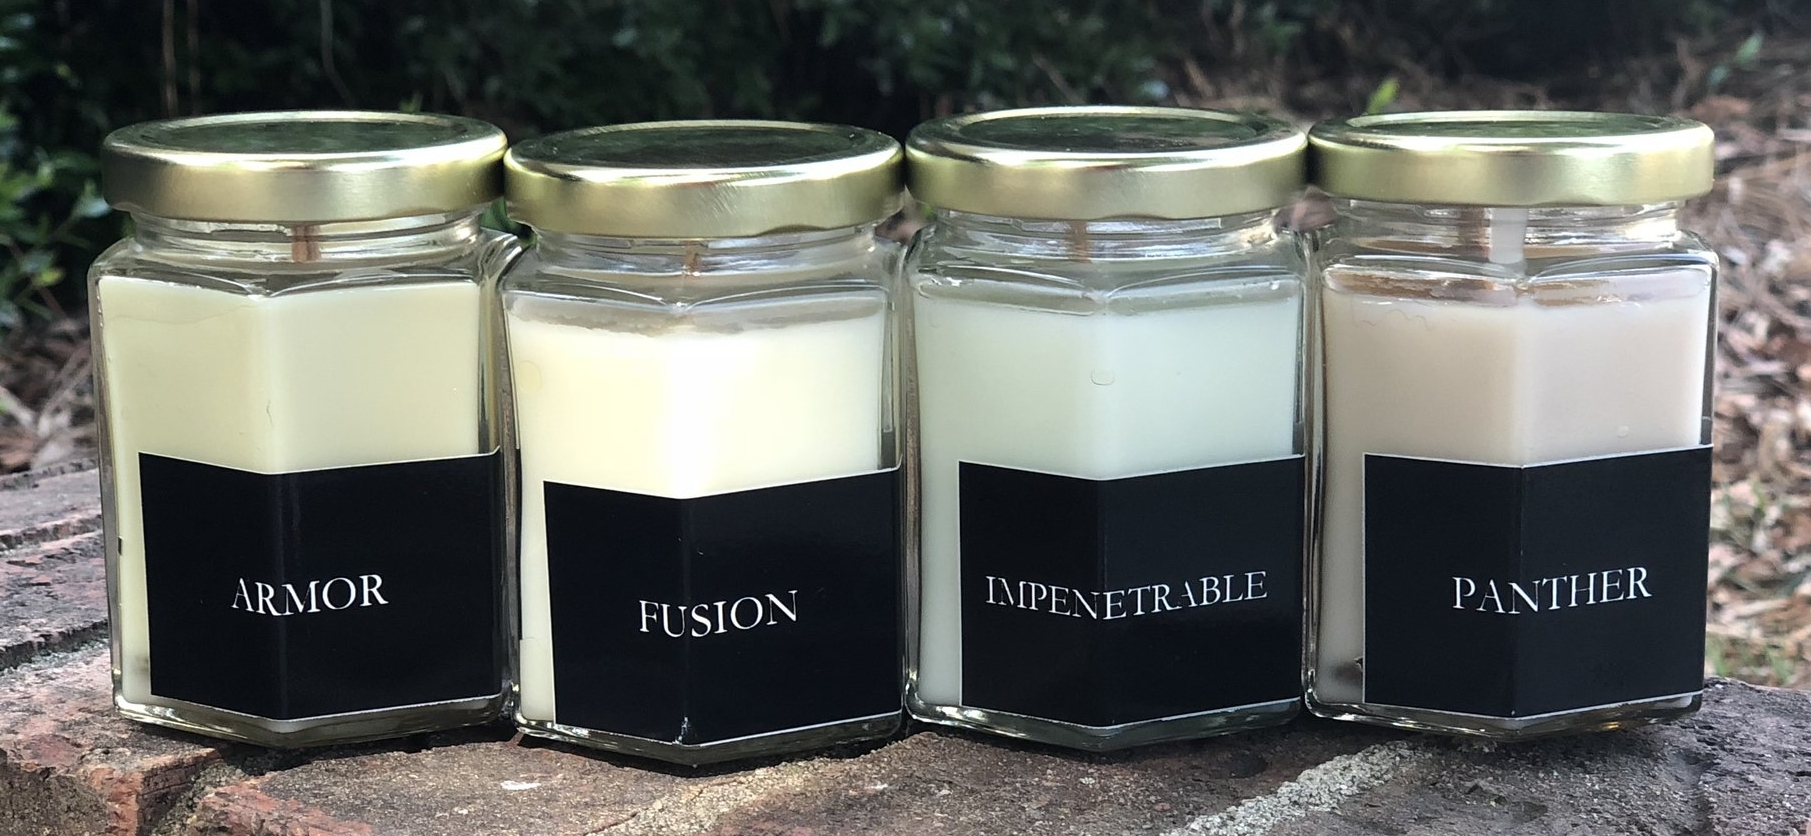 ARMOR, FUSION, IMPENETRABLE, and PANTHER - Homemade candles